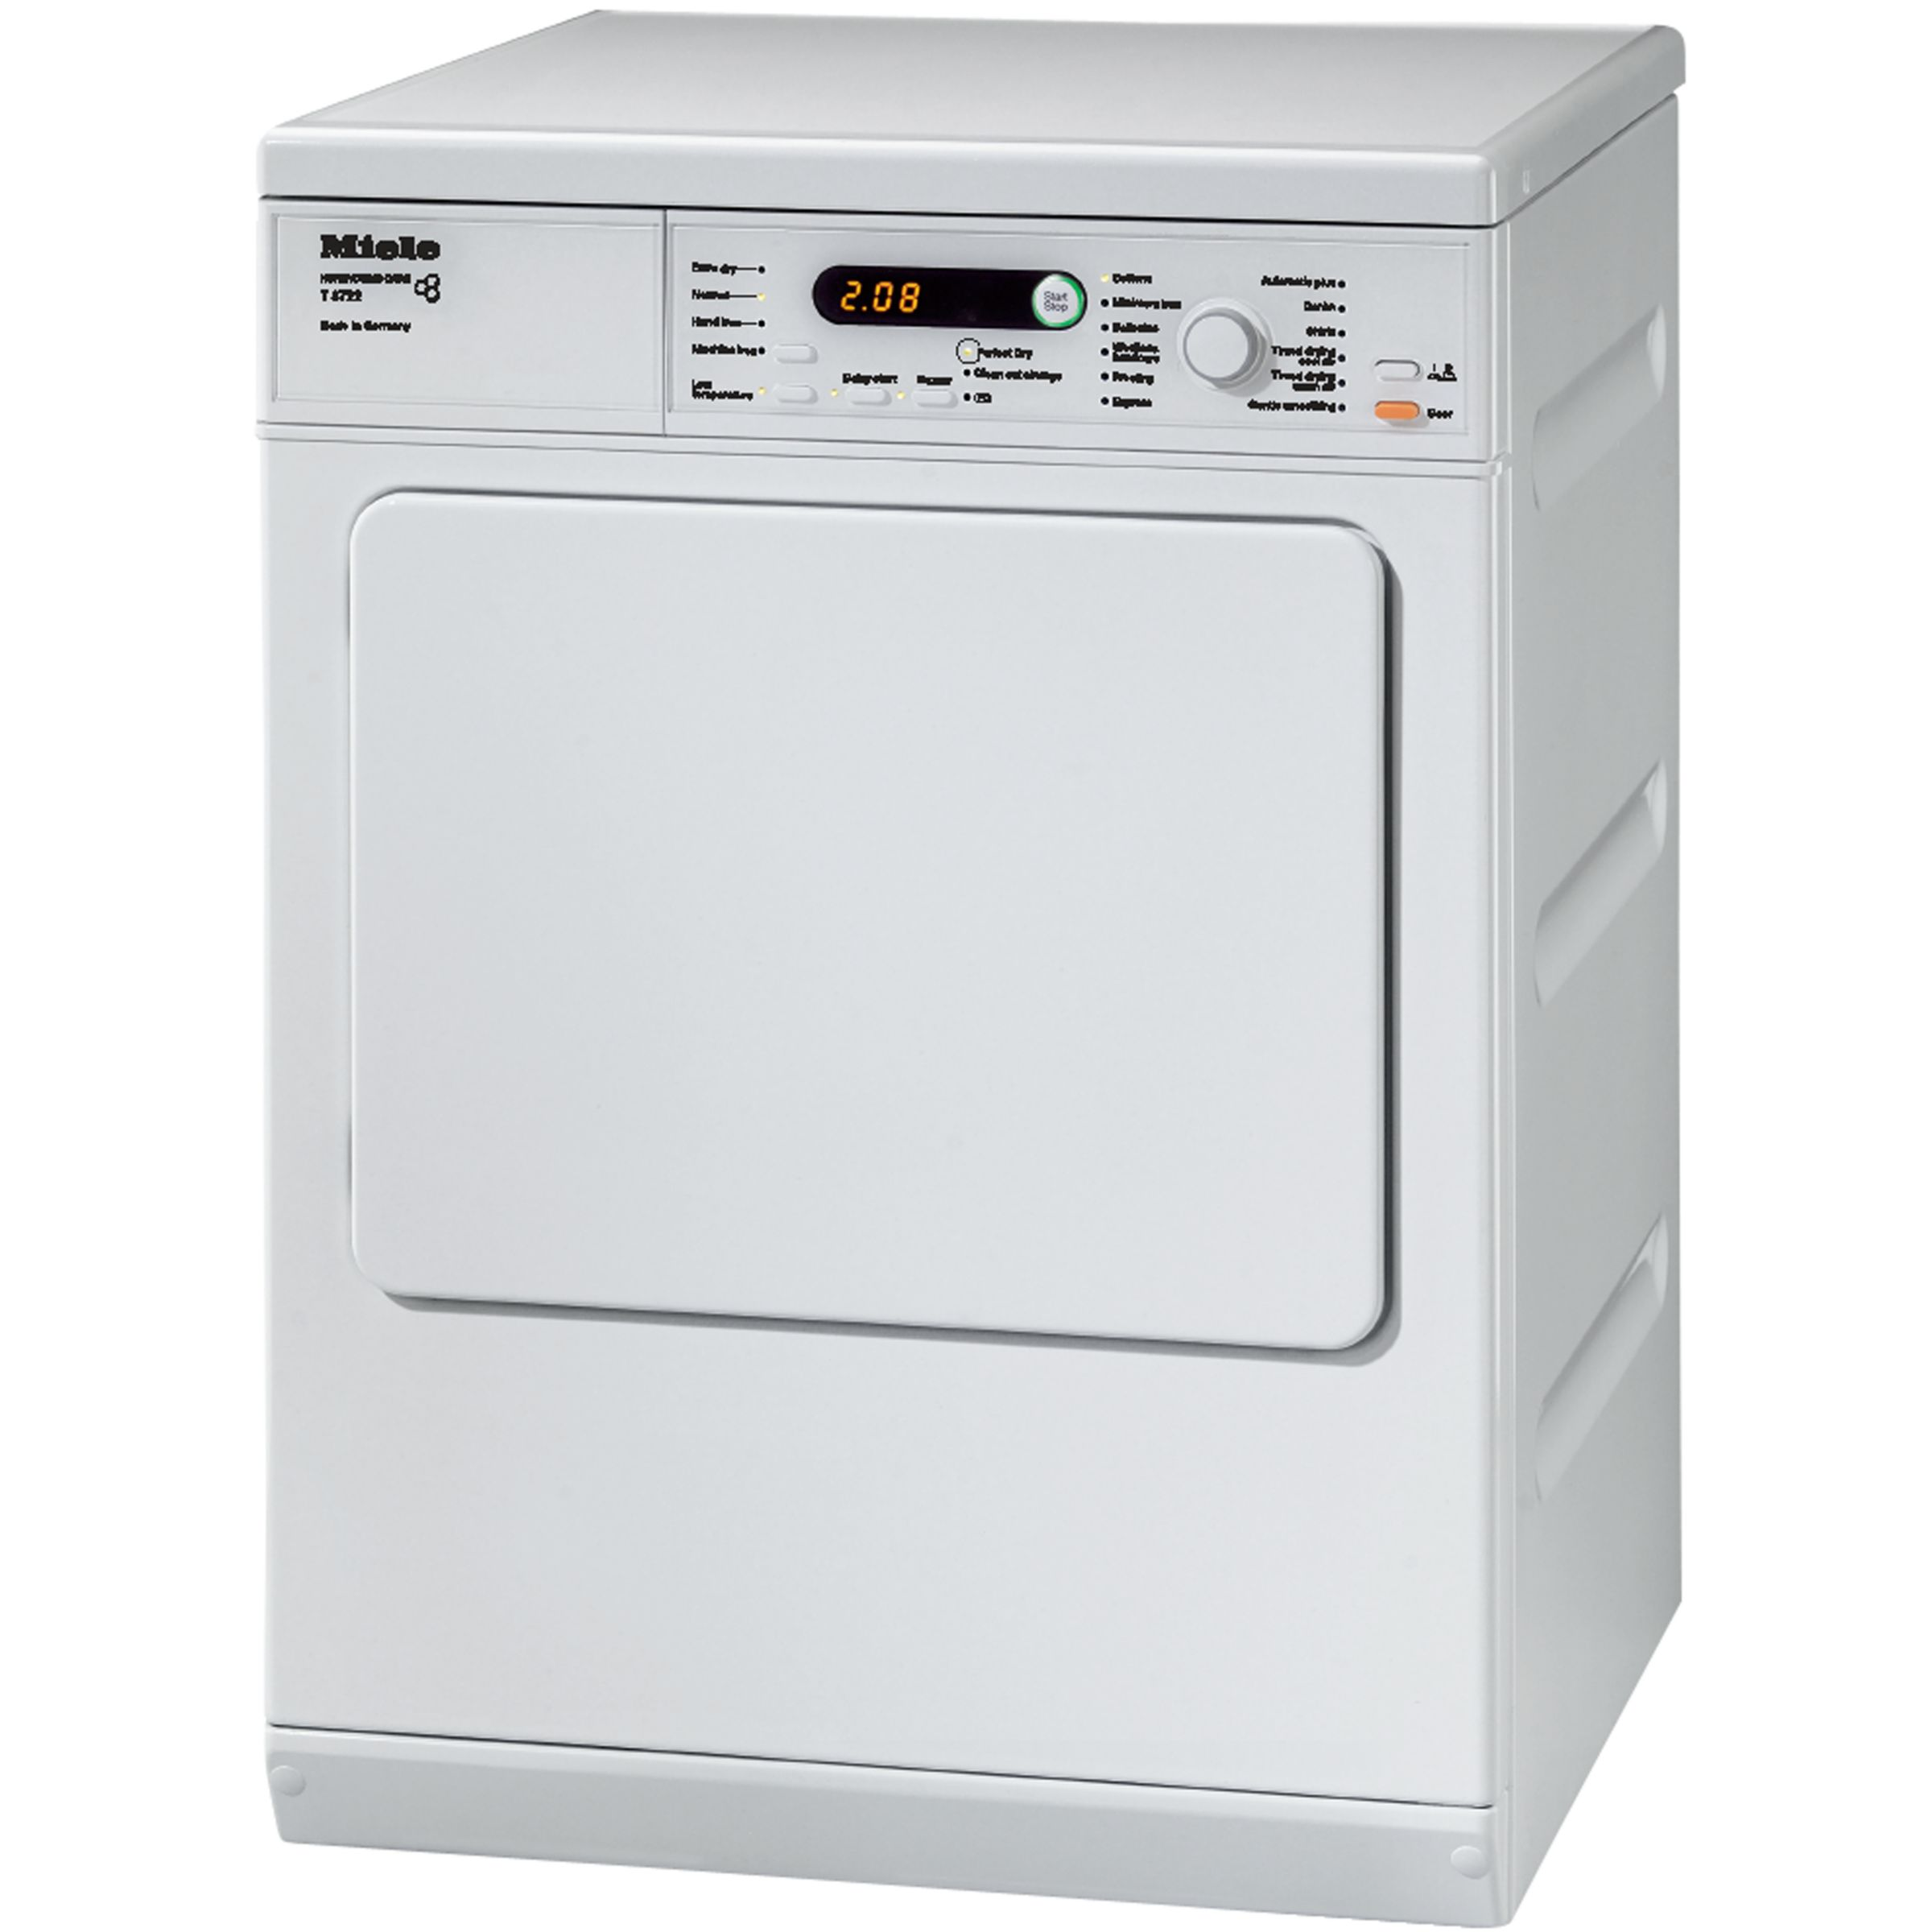 Miele Miele T8722 Vented Tumble Dryer, 7kg Load, C Energy rating, White